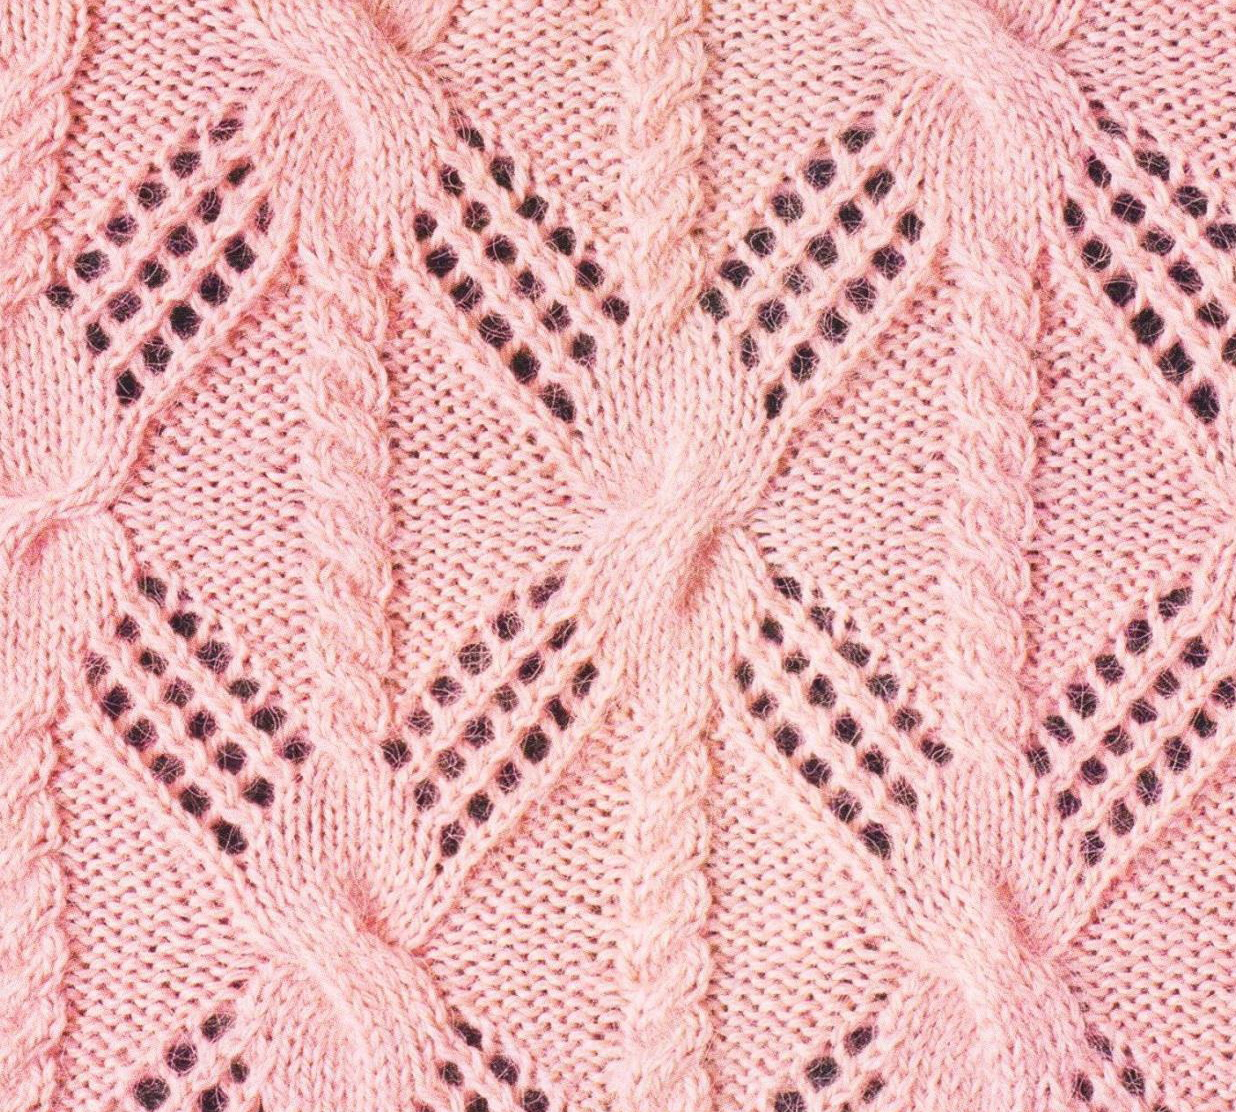 Lace Knitting Chart Symbols : Cable lace knitting stitches yaas for